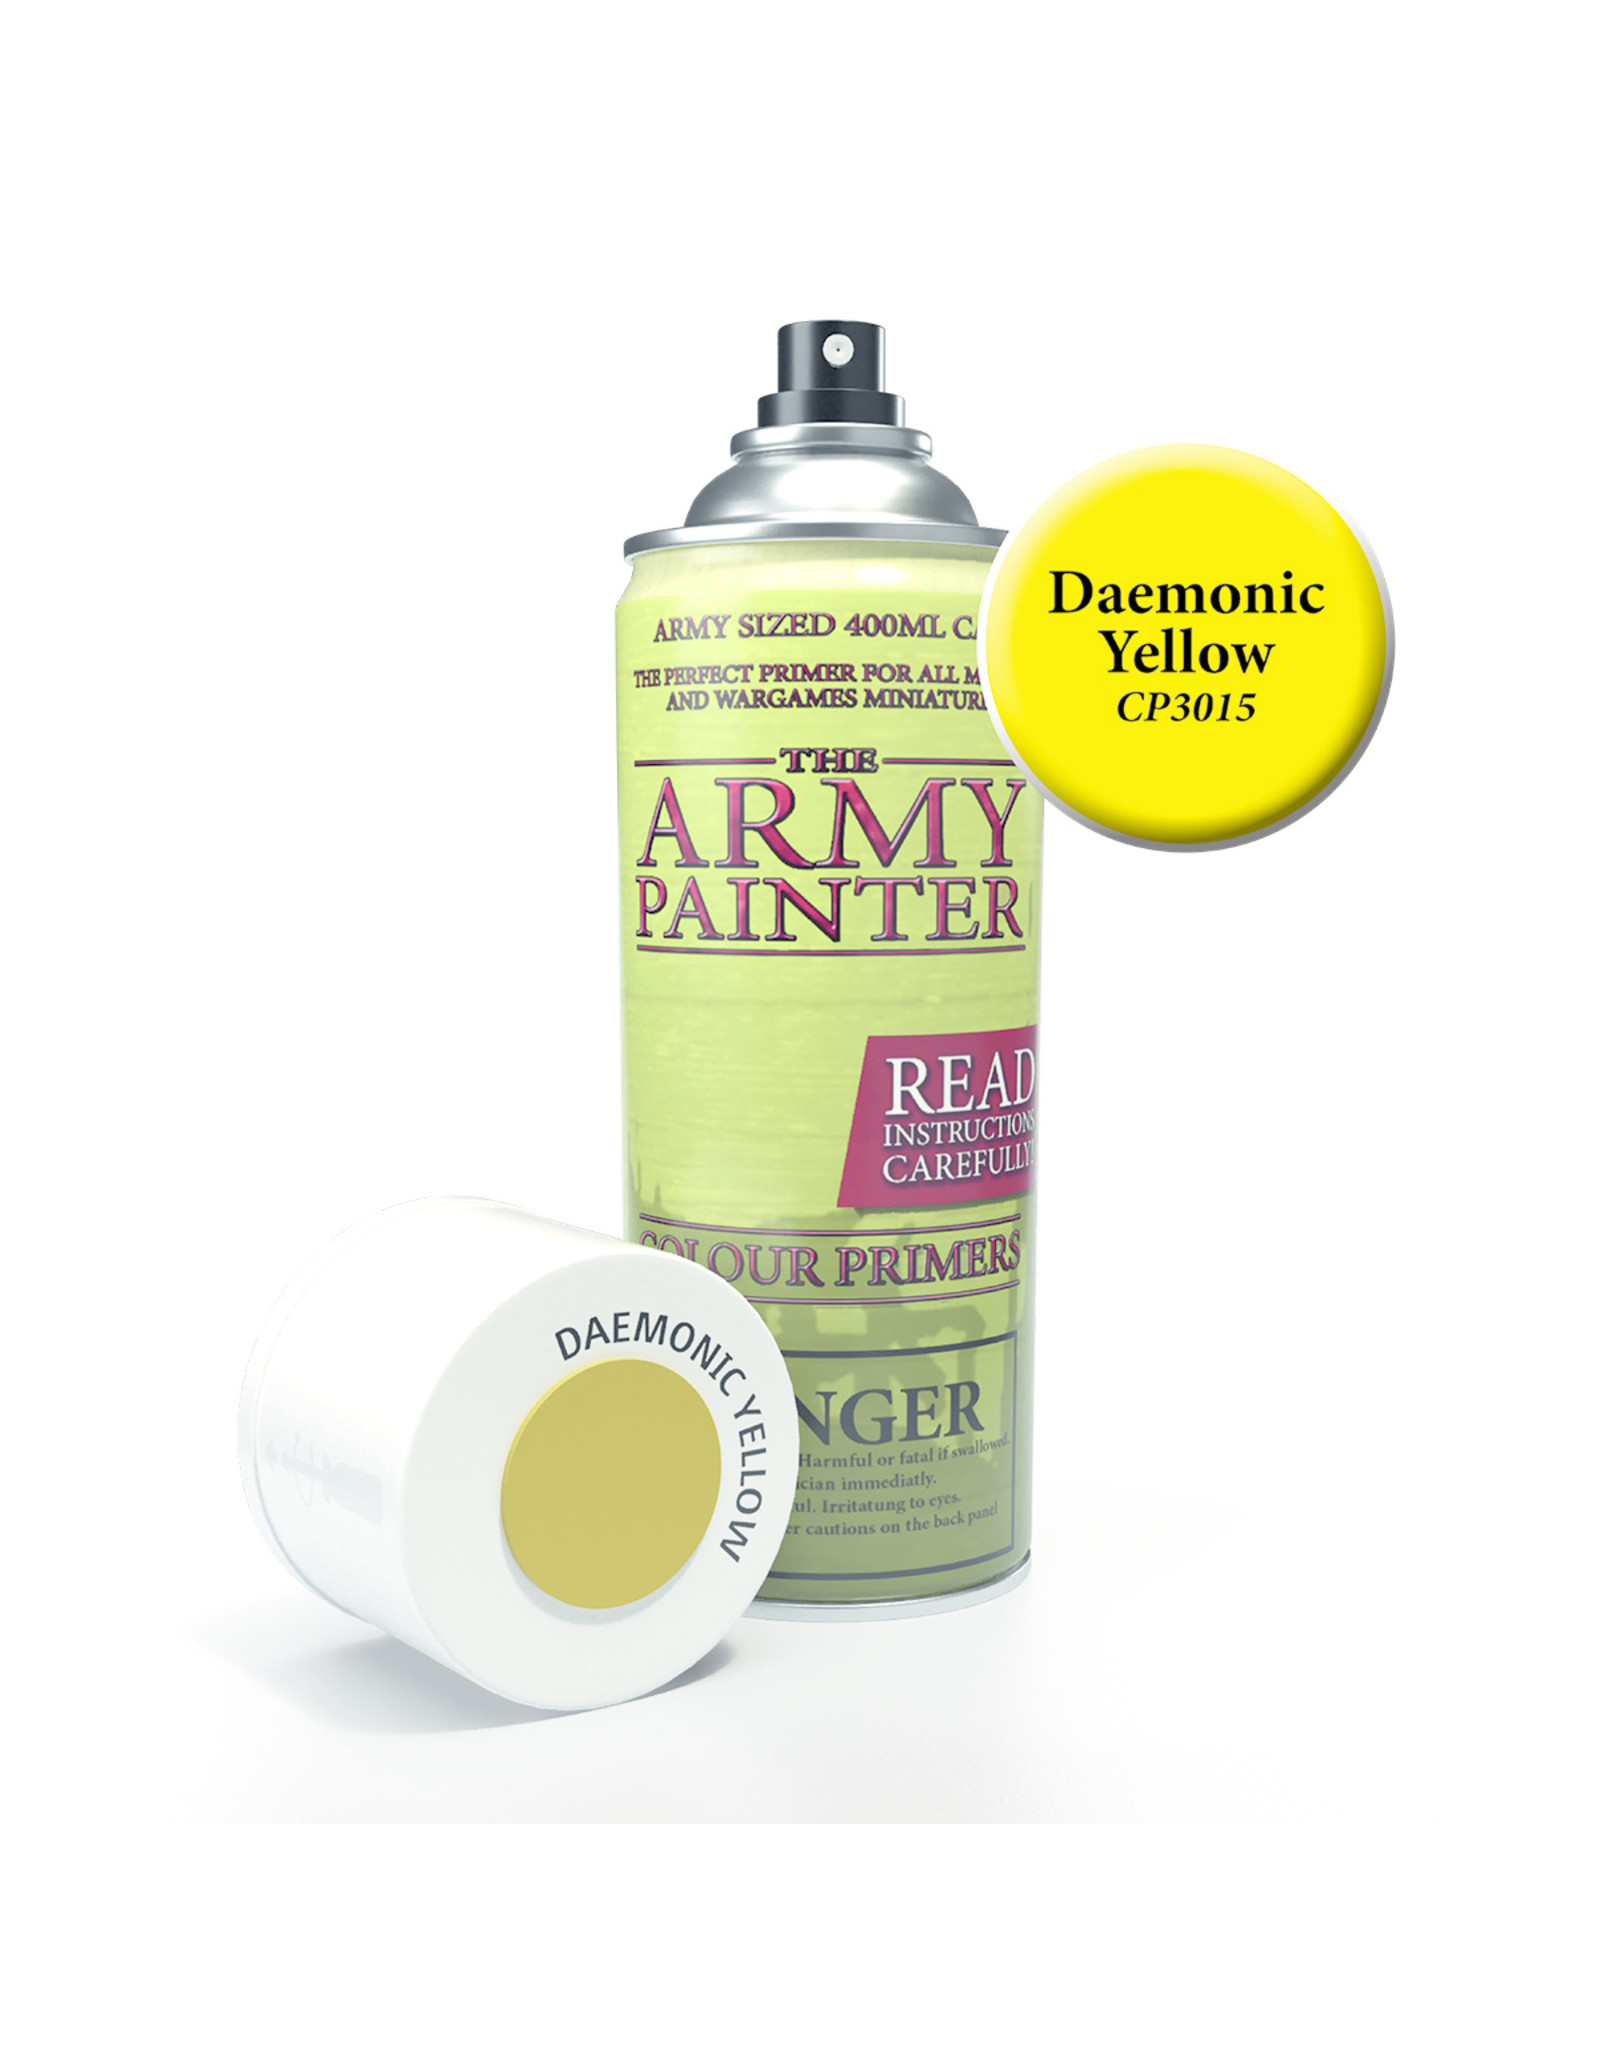 Army Painter TAP Primer - Daemonic Yellow Spray